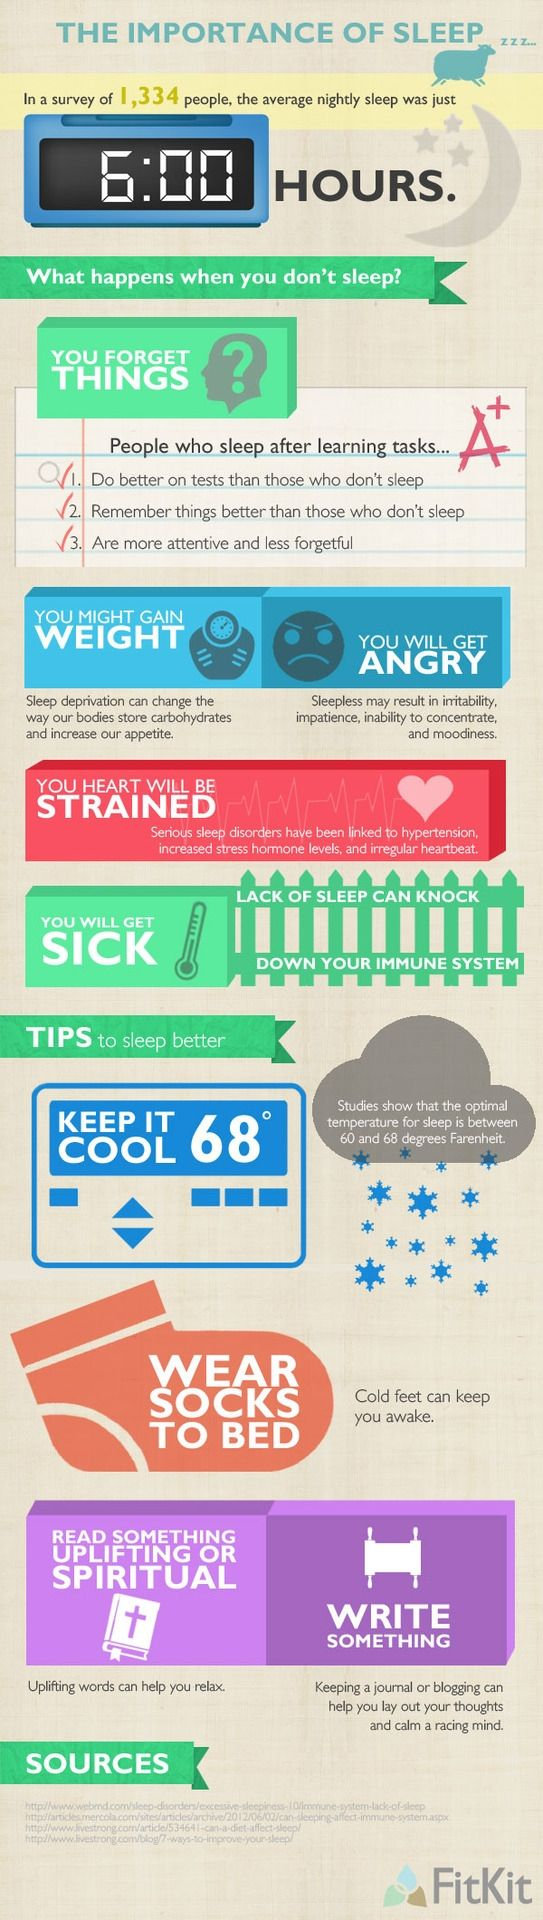 For more about SLEEP and SLEEP DISORDERS visit http://www.grandhealthinst.com/